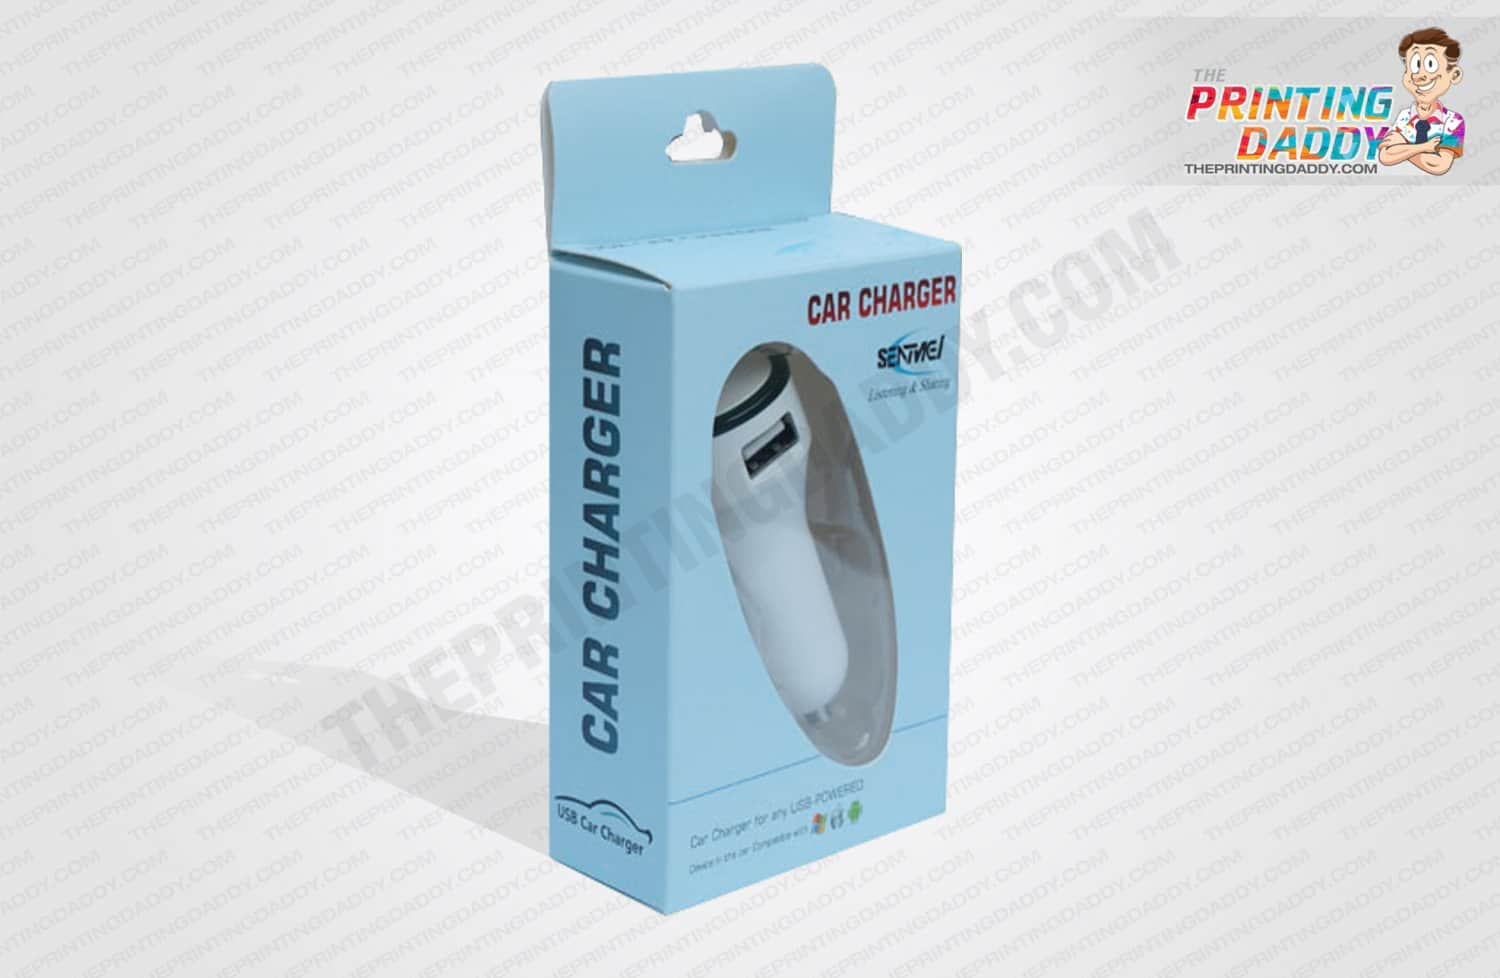 Travel Charger Packaging Boxes The Printing Daddy